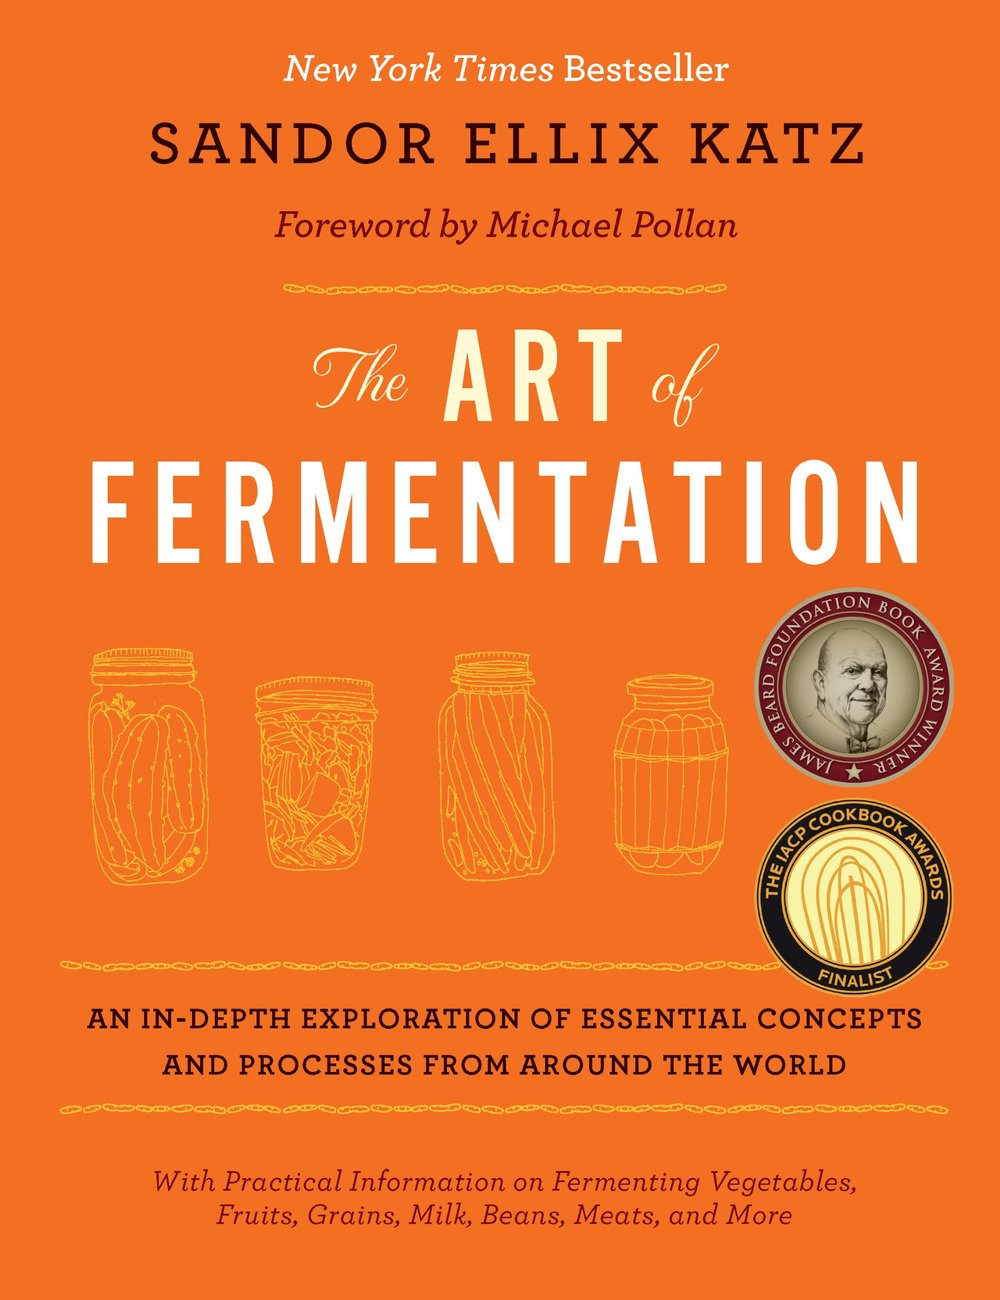 the art of fermentation.jpg